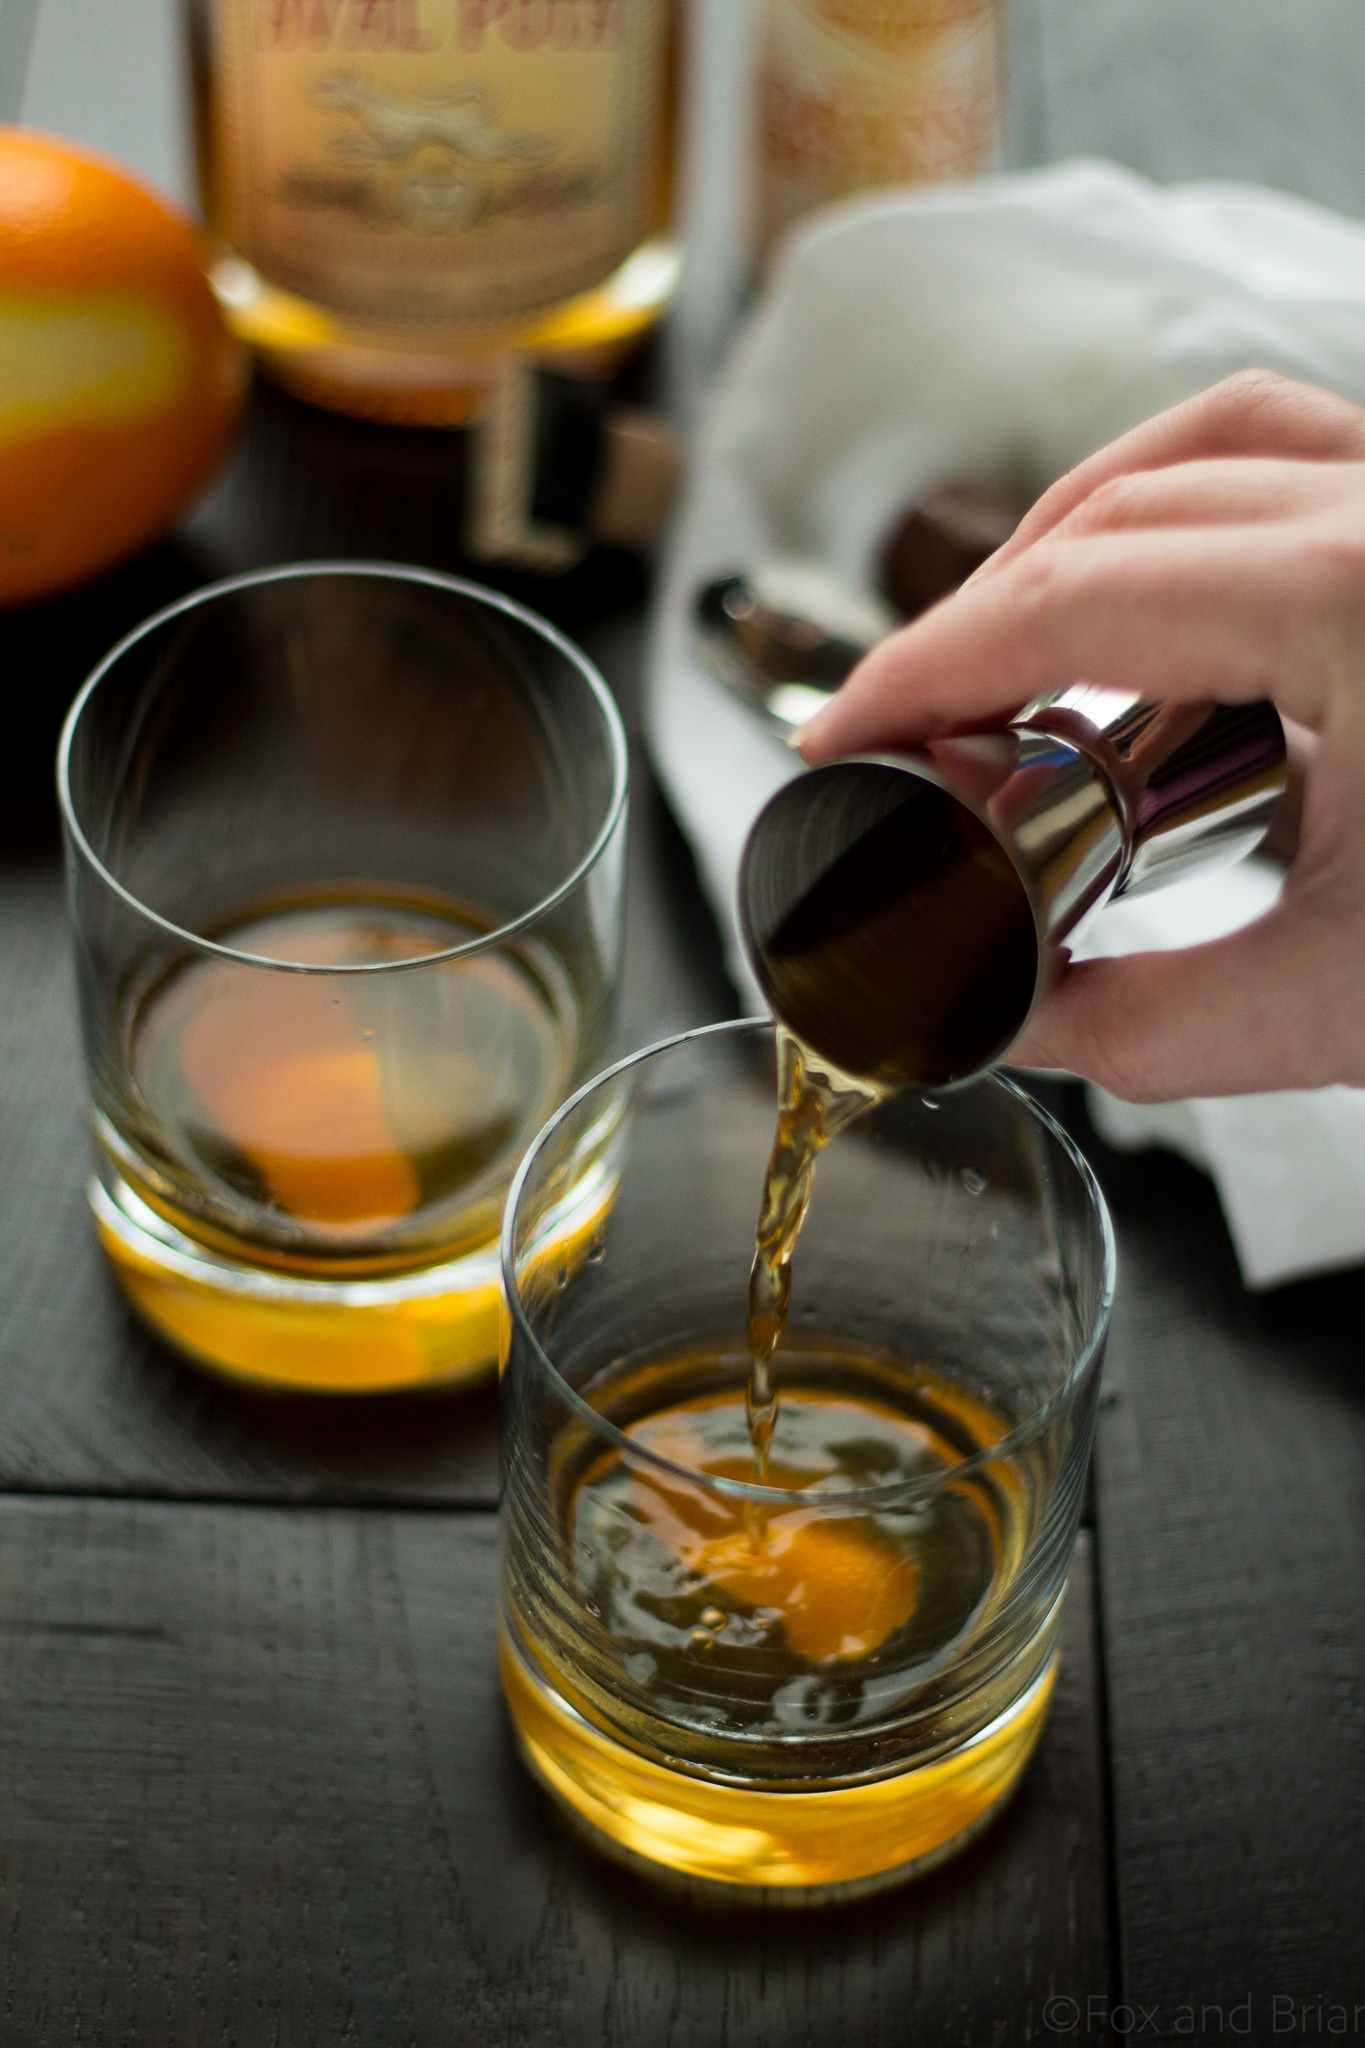 This twist on the classic old fashioned uses apple whiskey to make a totally enjoyable cocktail. Whether you are a new or experienced whiskey drinker, you will love this cocktail!